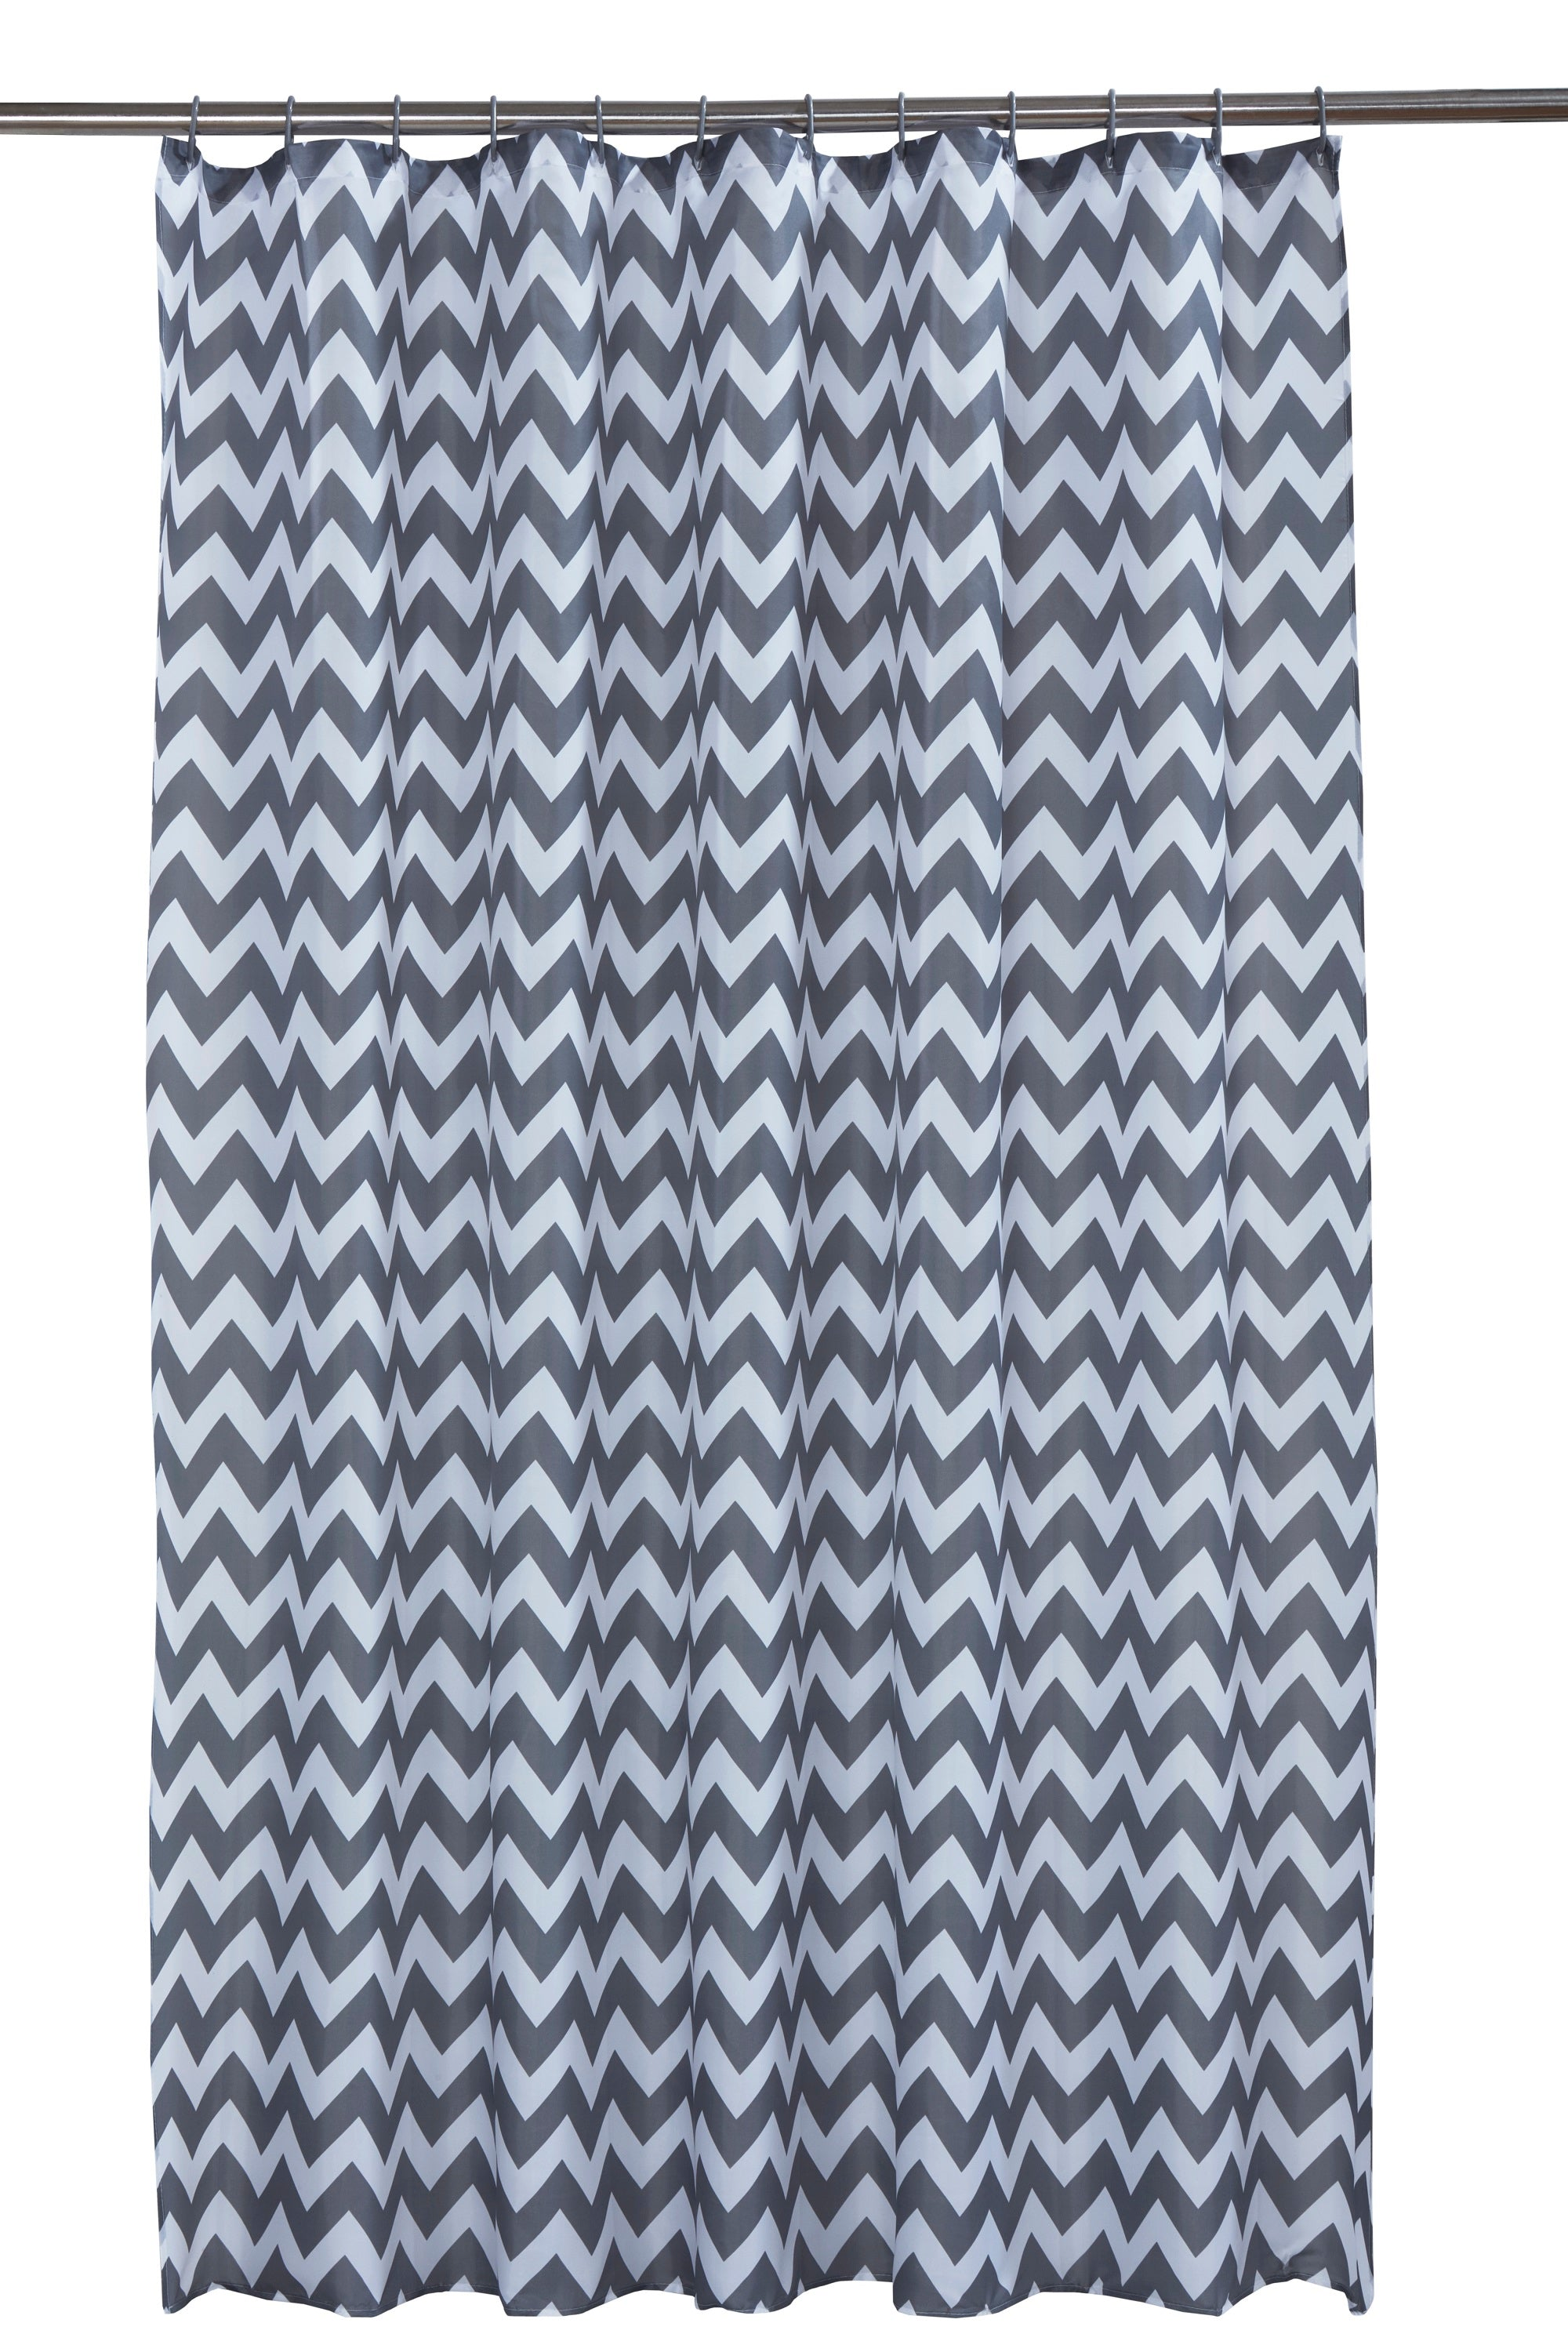 Chevron Grey Printed Shower Curtain With Rings